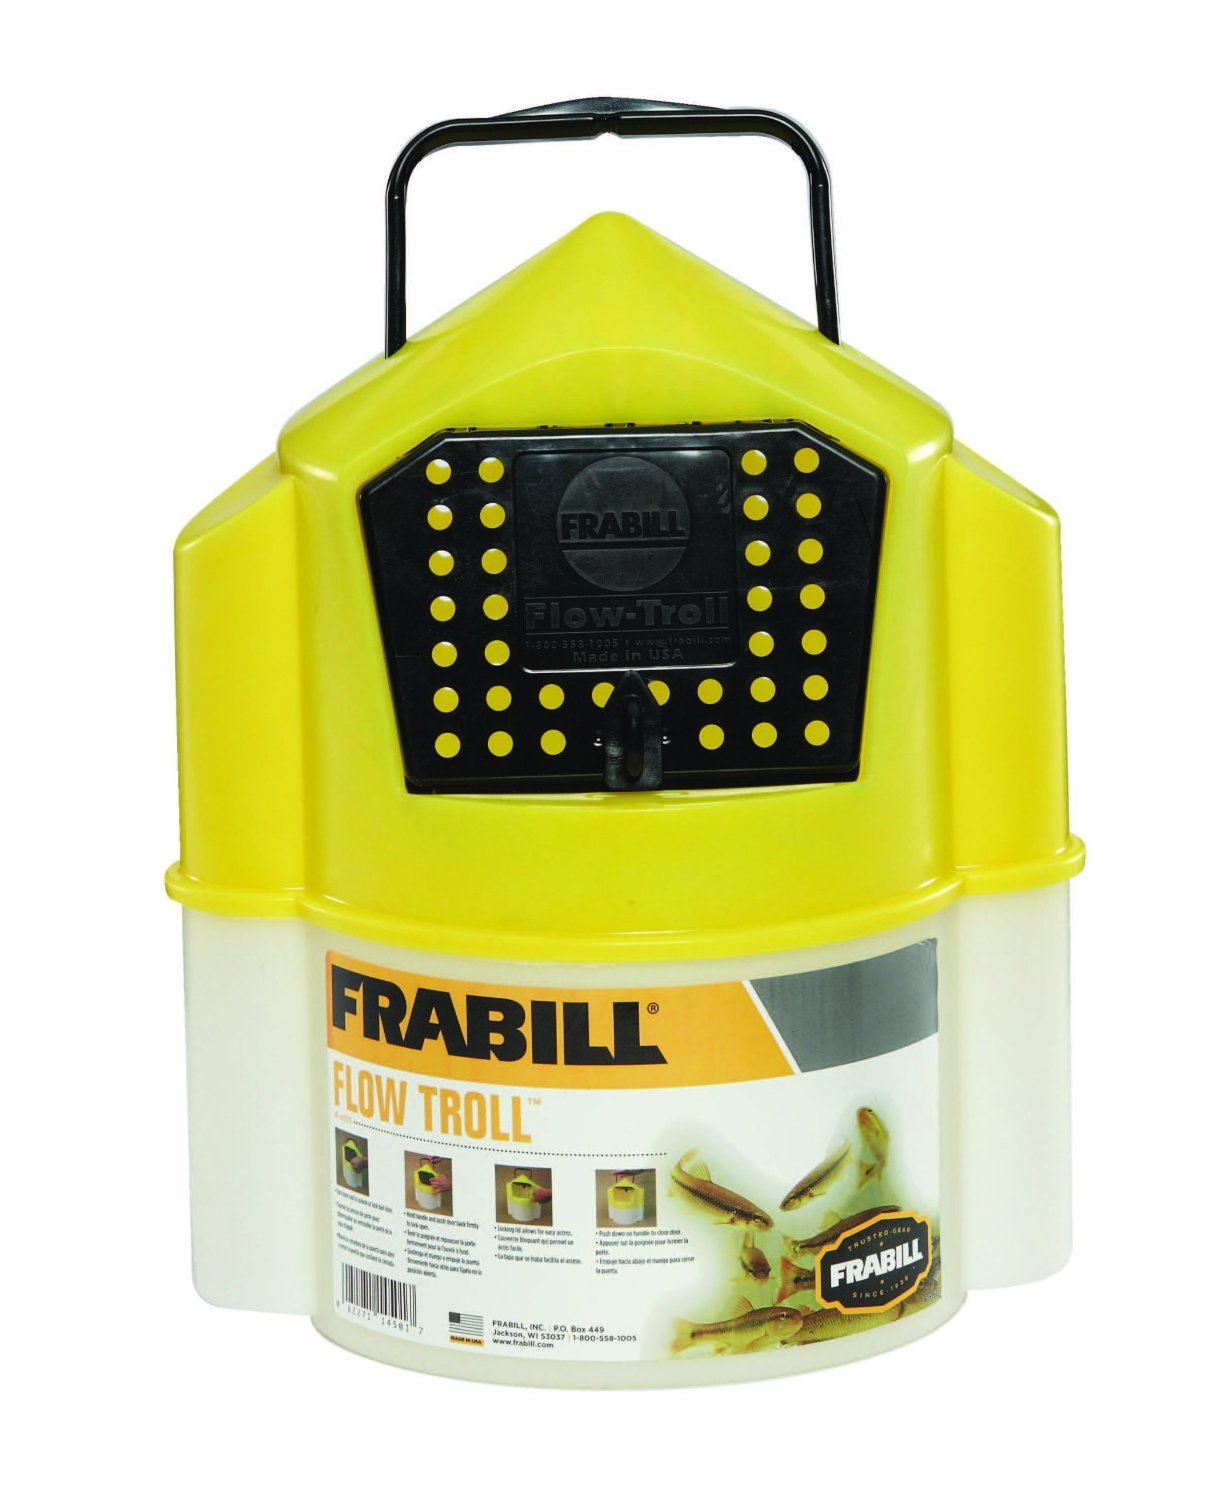 frabill flow troll bait container